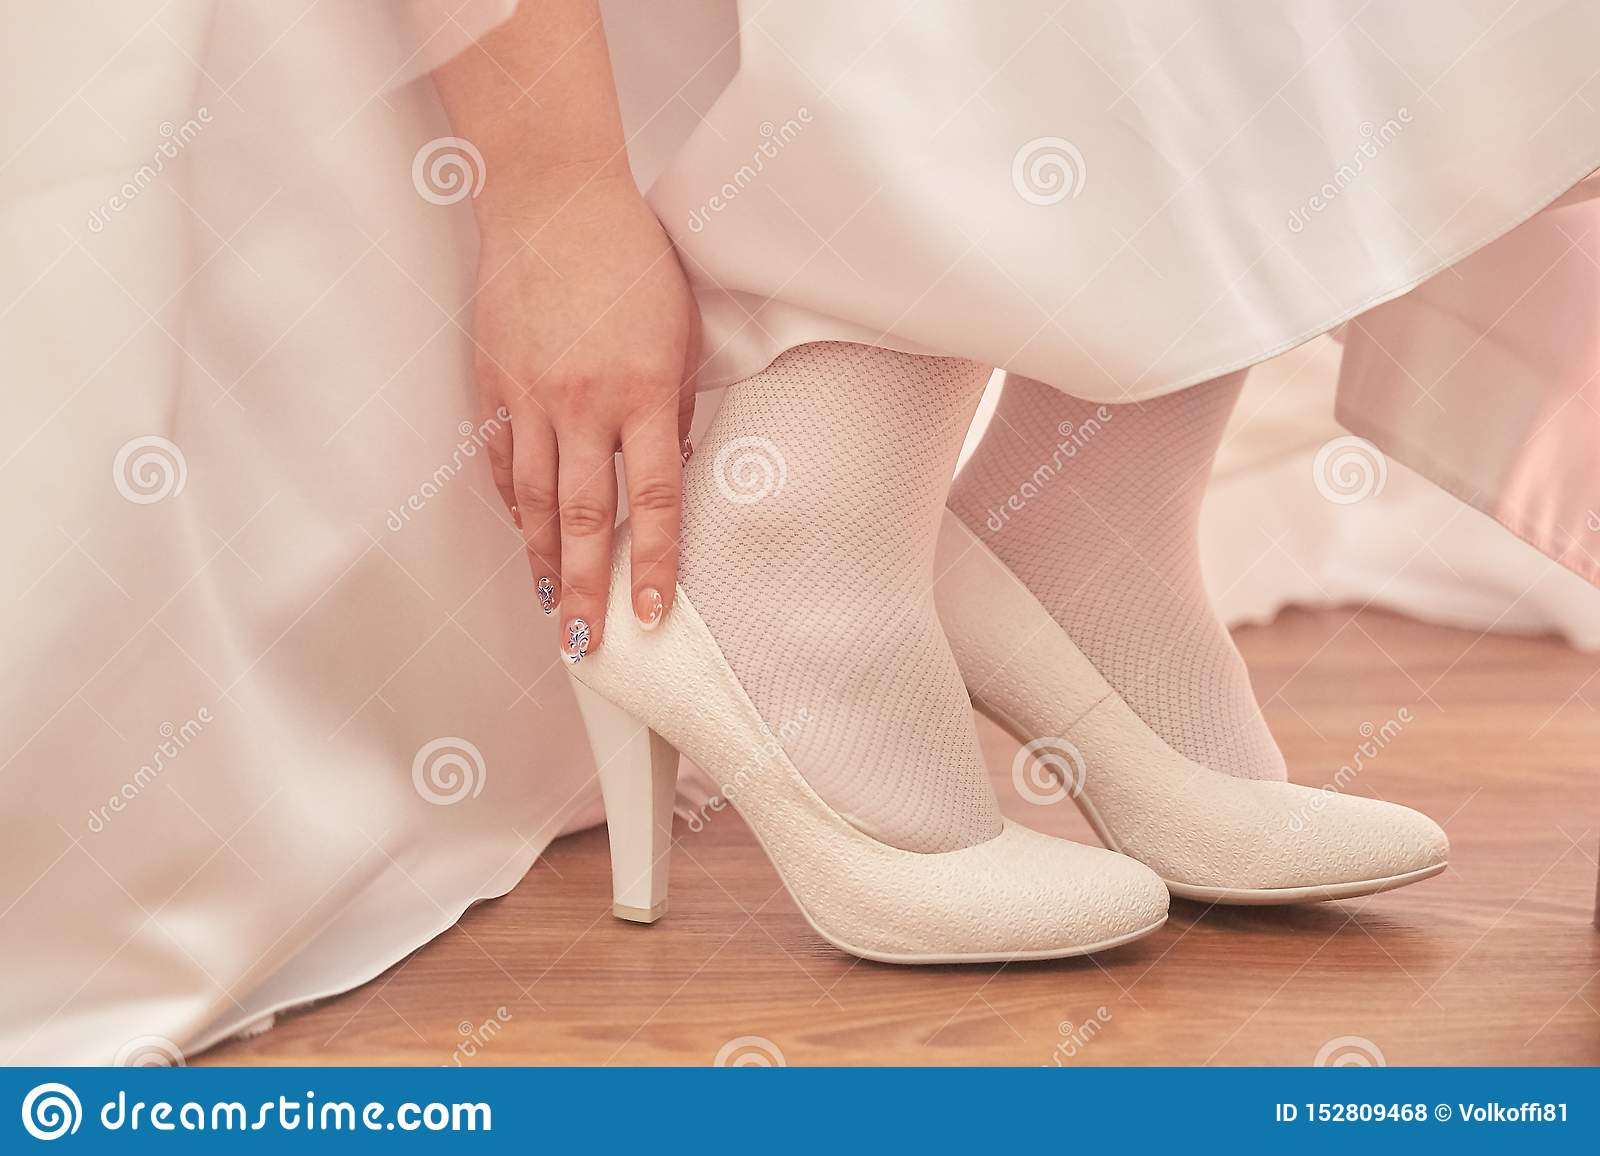 Female feet in white shoes